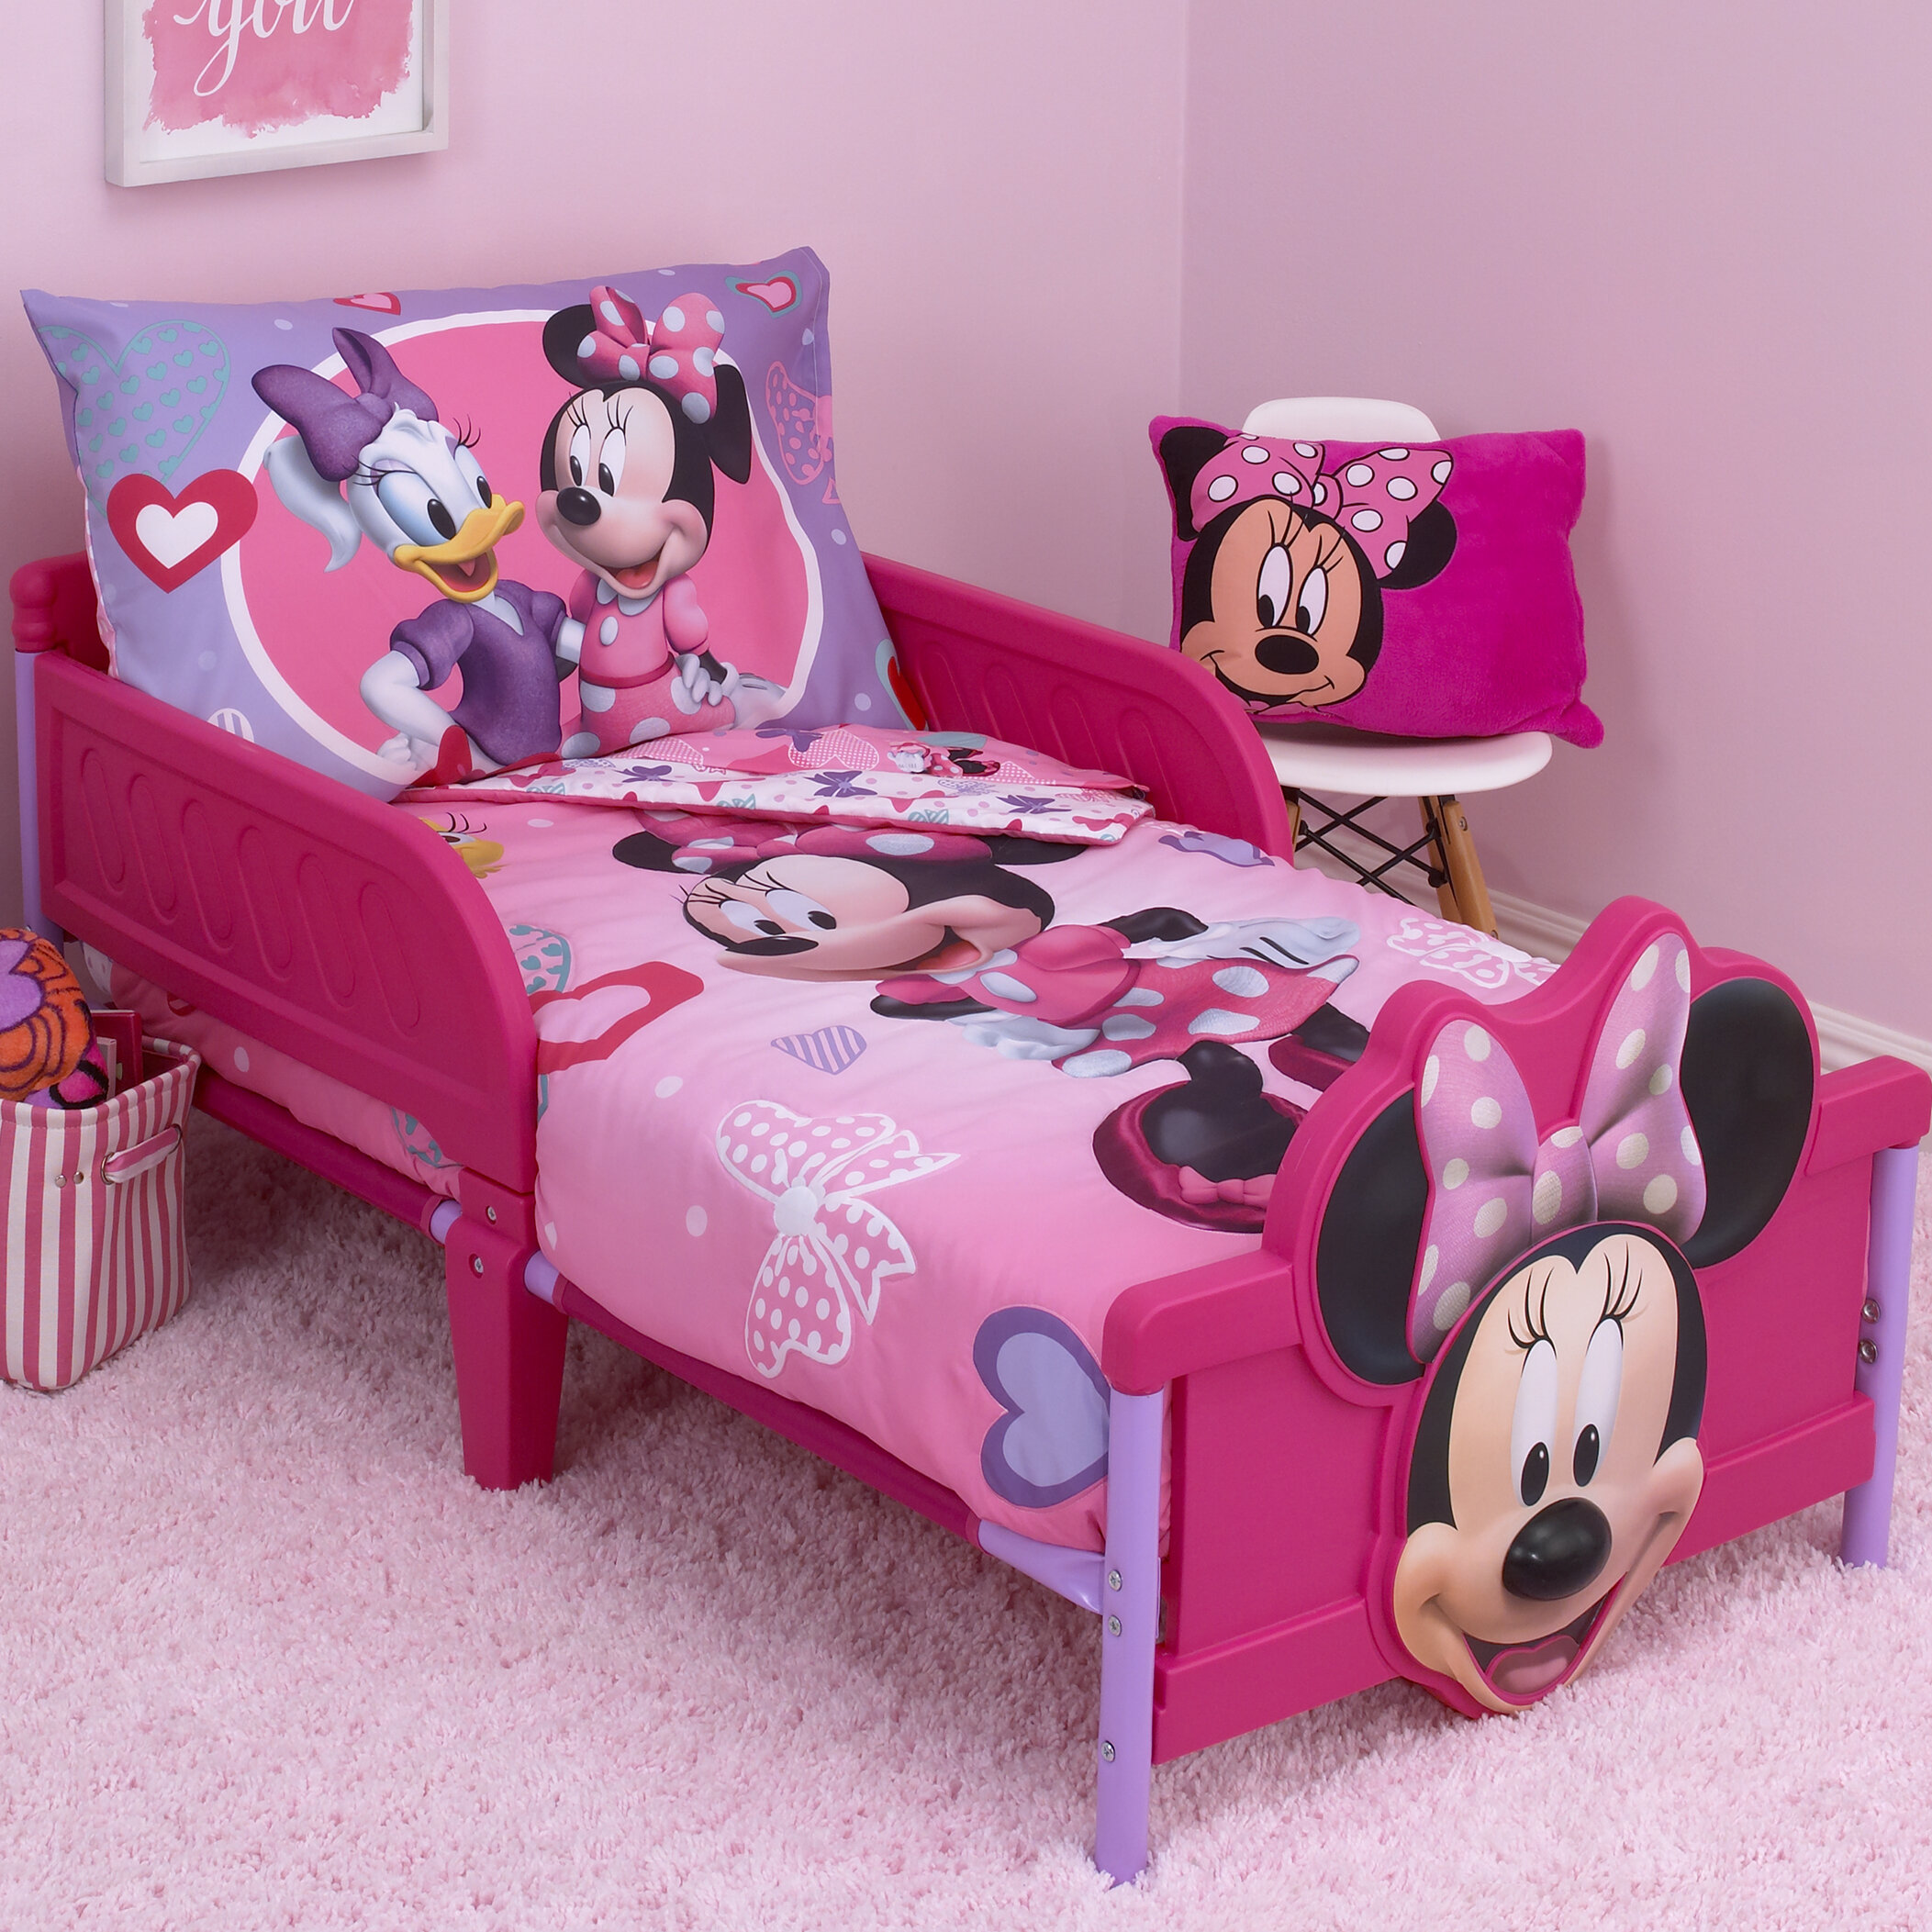 Disney Minnie Mouse Hearts and Bows 4 Piece Toddler ...